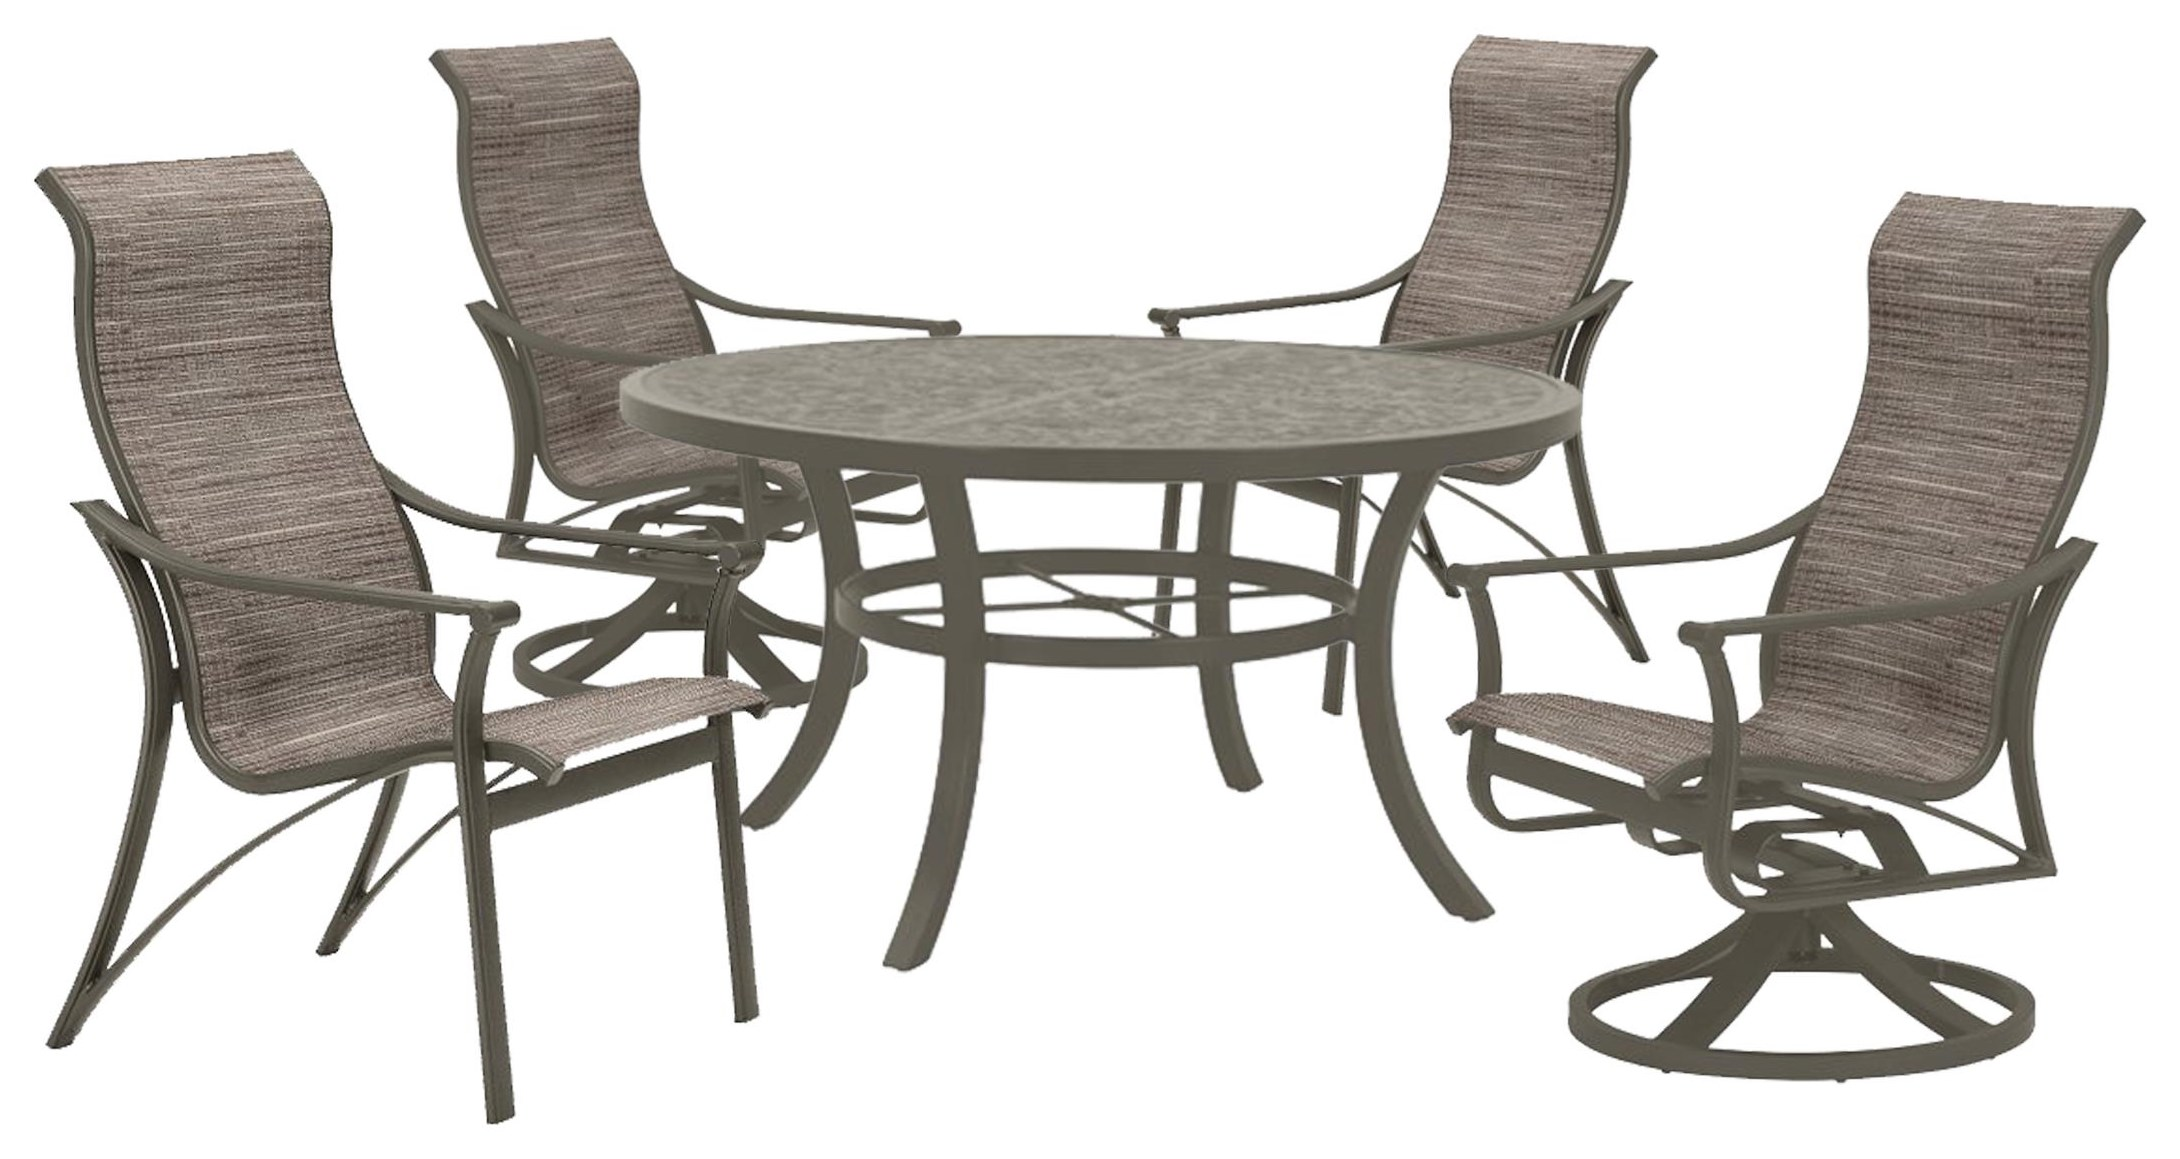 Corsica Outdoor Table, Rocker, and Chair by Tropitone at Johnny Janosik